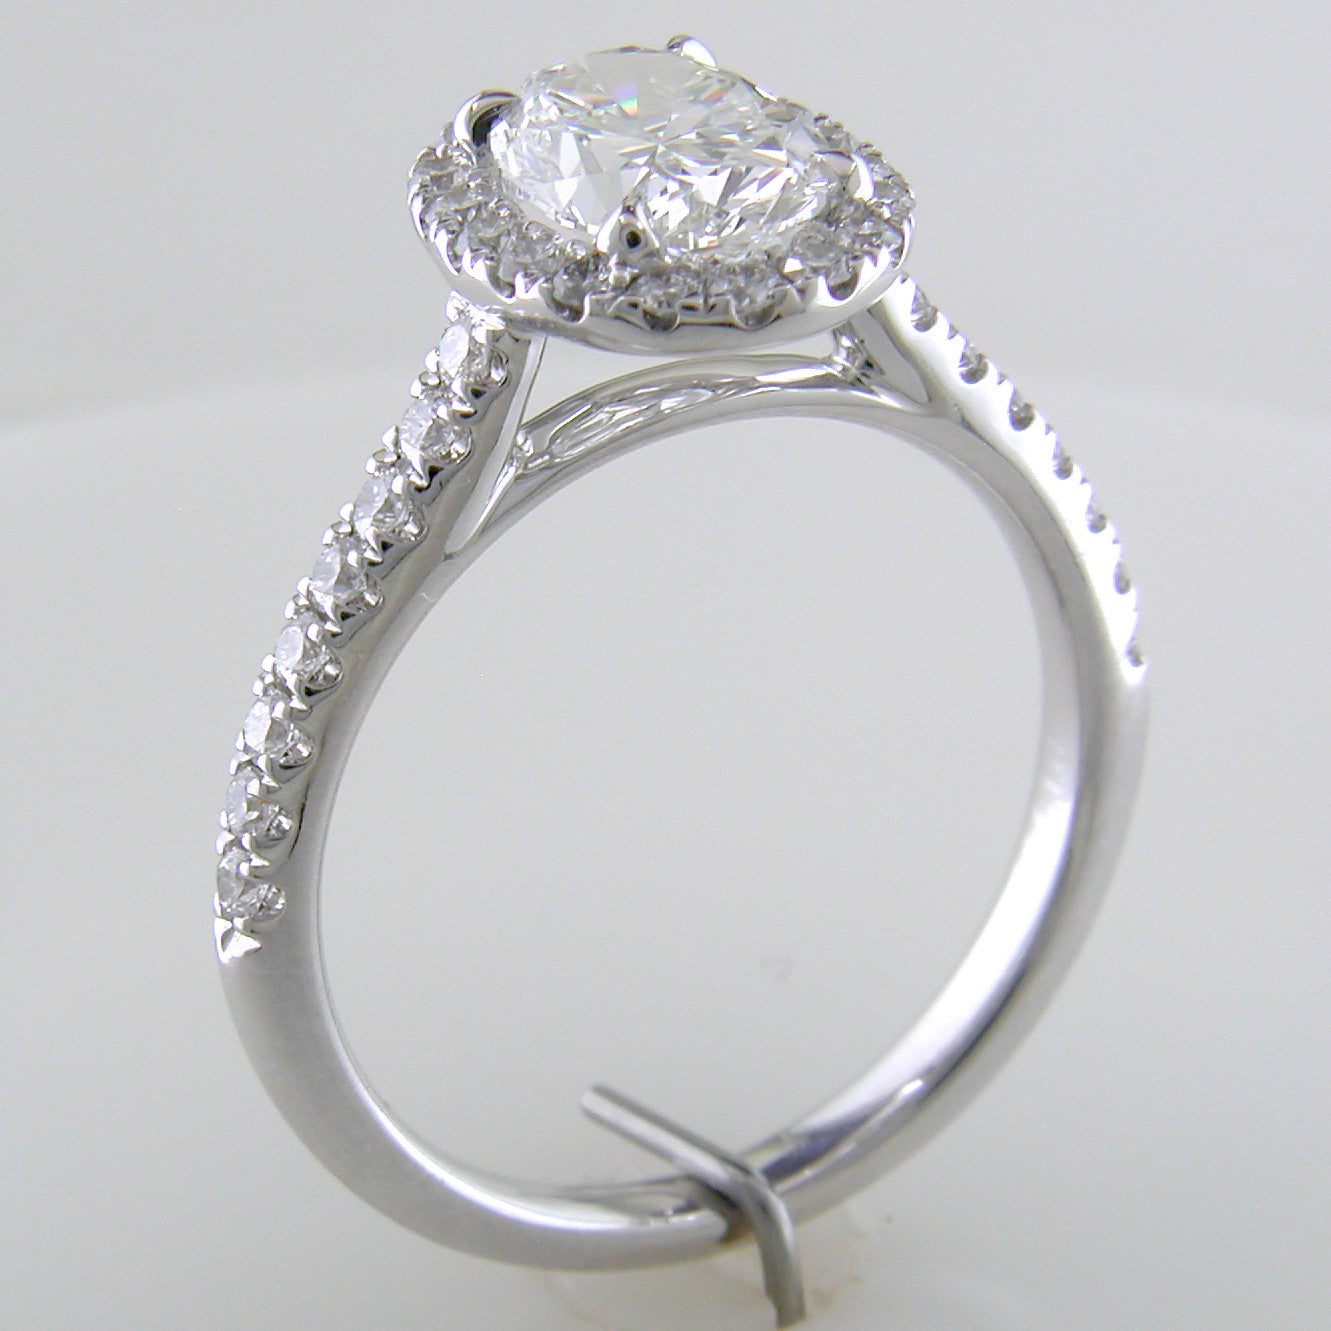 Oval Brilliant 1.30 carat Forevermark Halo Engagement Ring Platinum